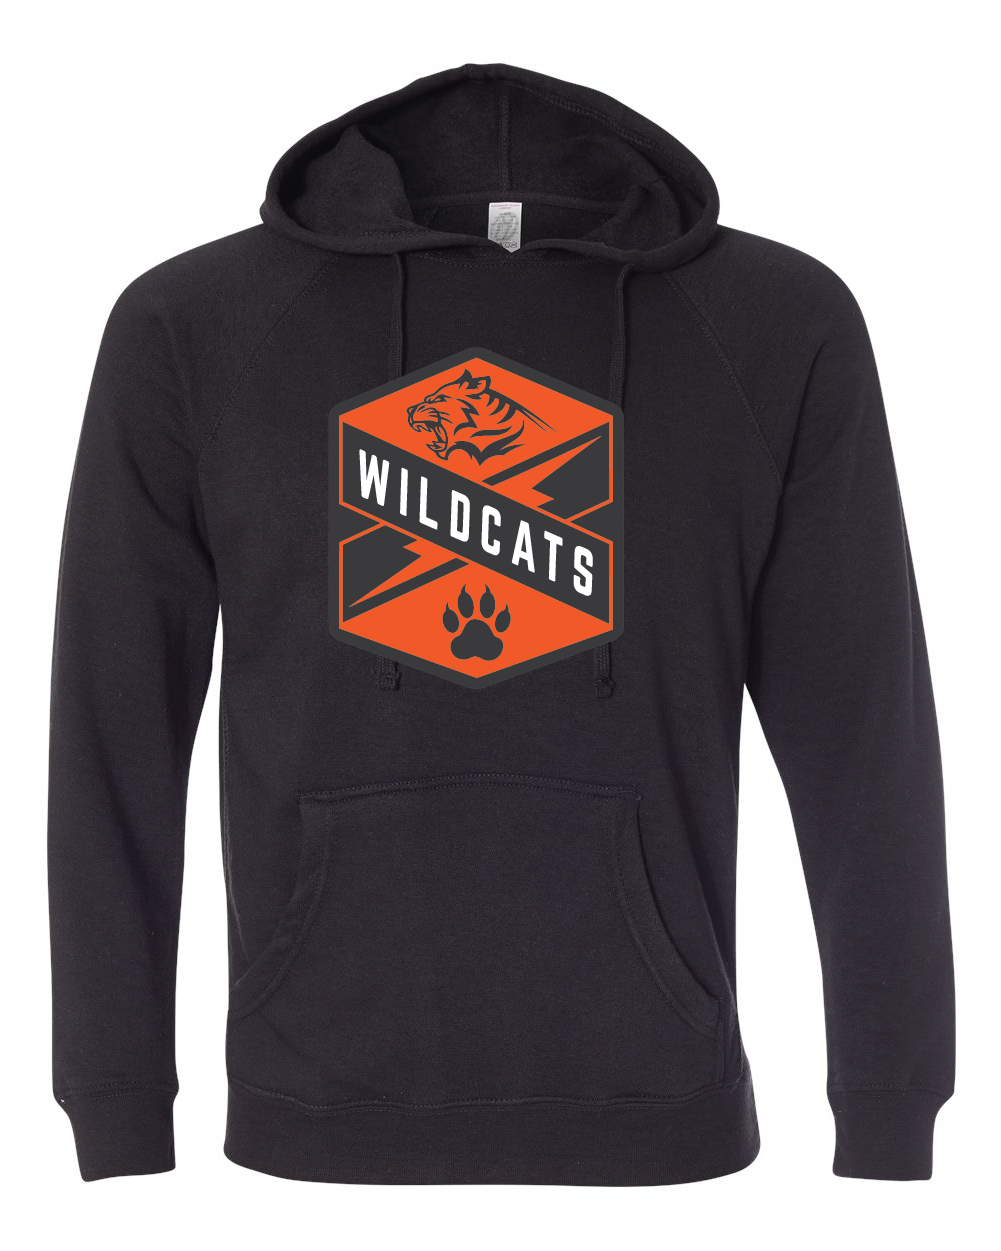 Black Raglan hoodie with Wildcats Crest in orange